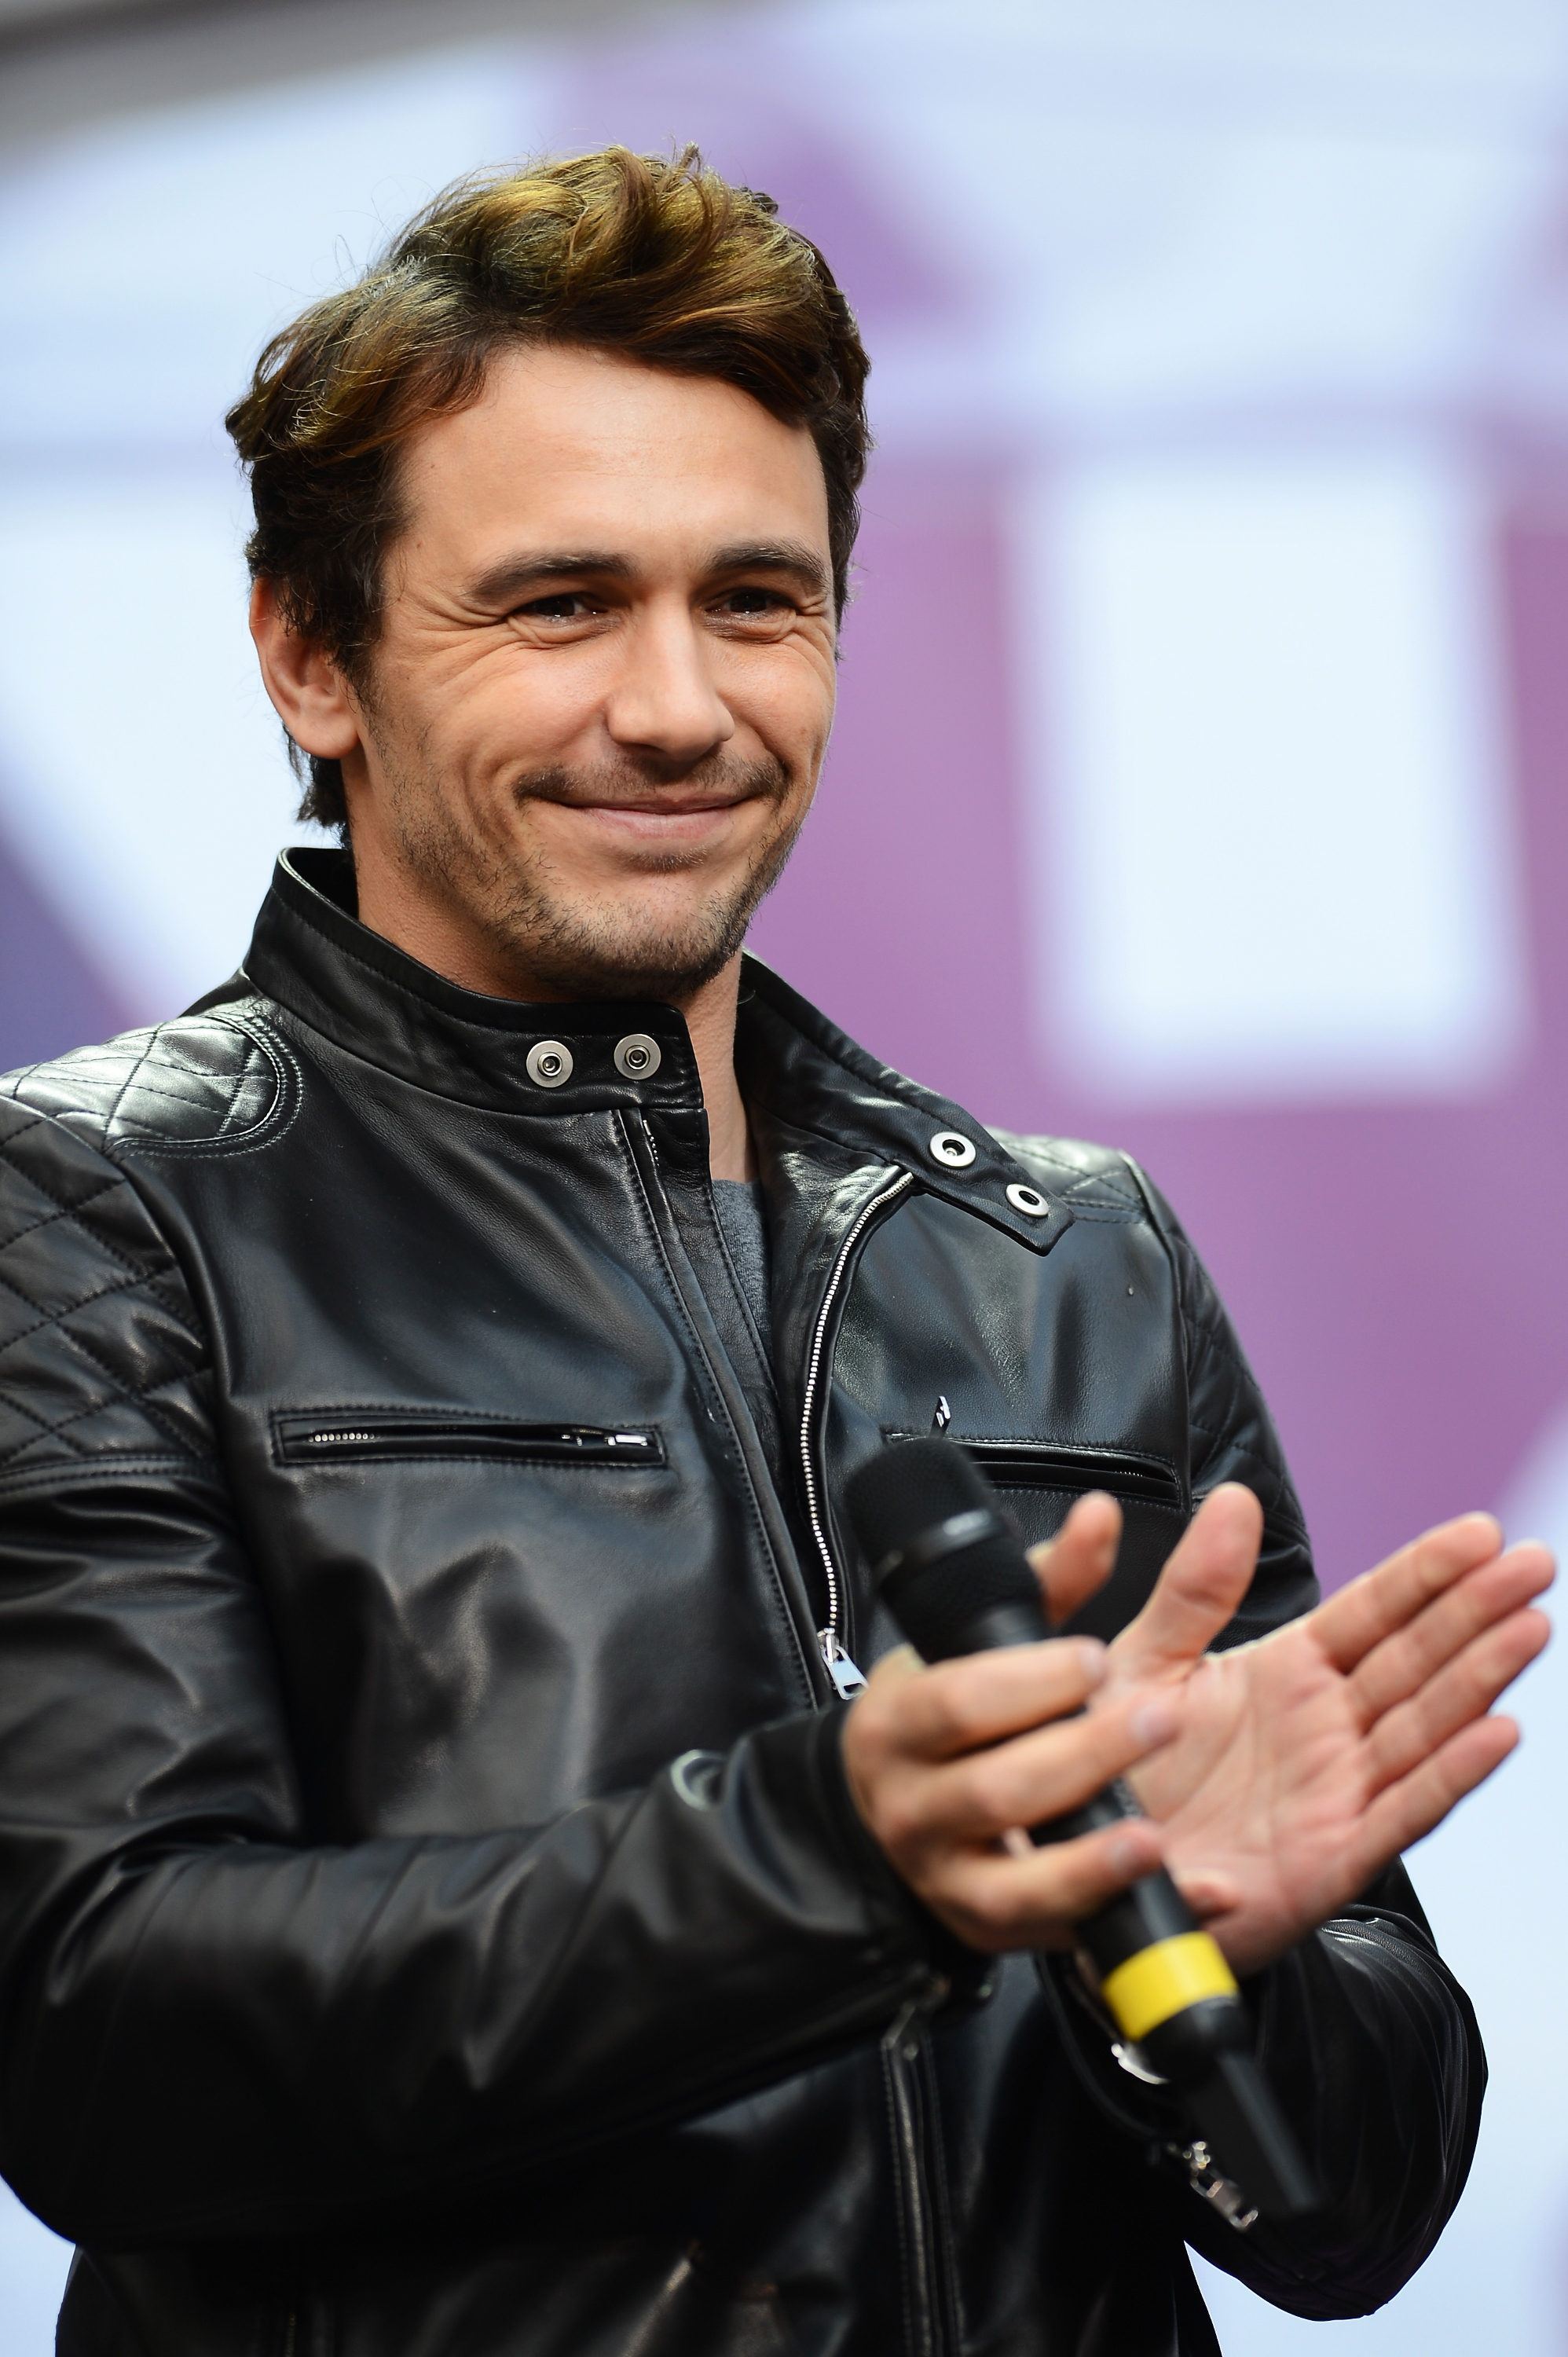 Actor James Franco (Photo by Ian Gavan/Getty Images for Gucci)